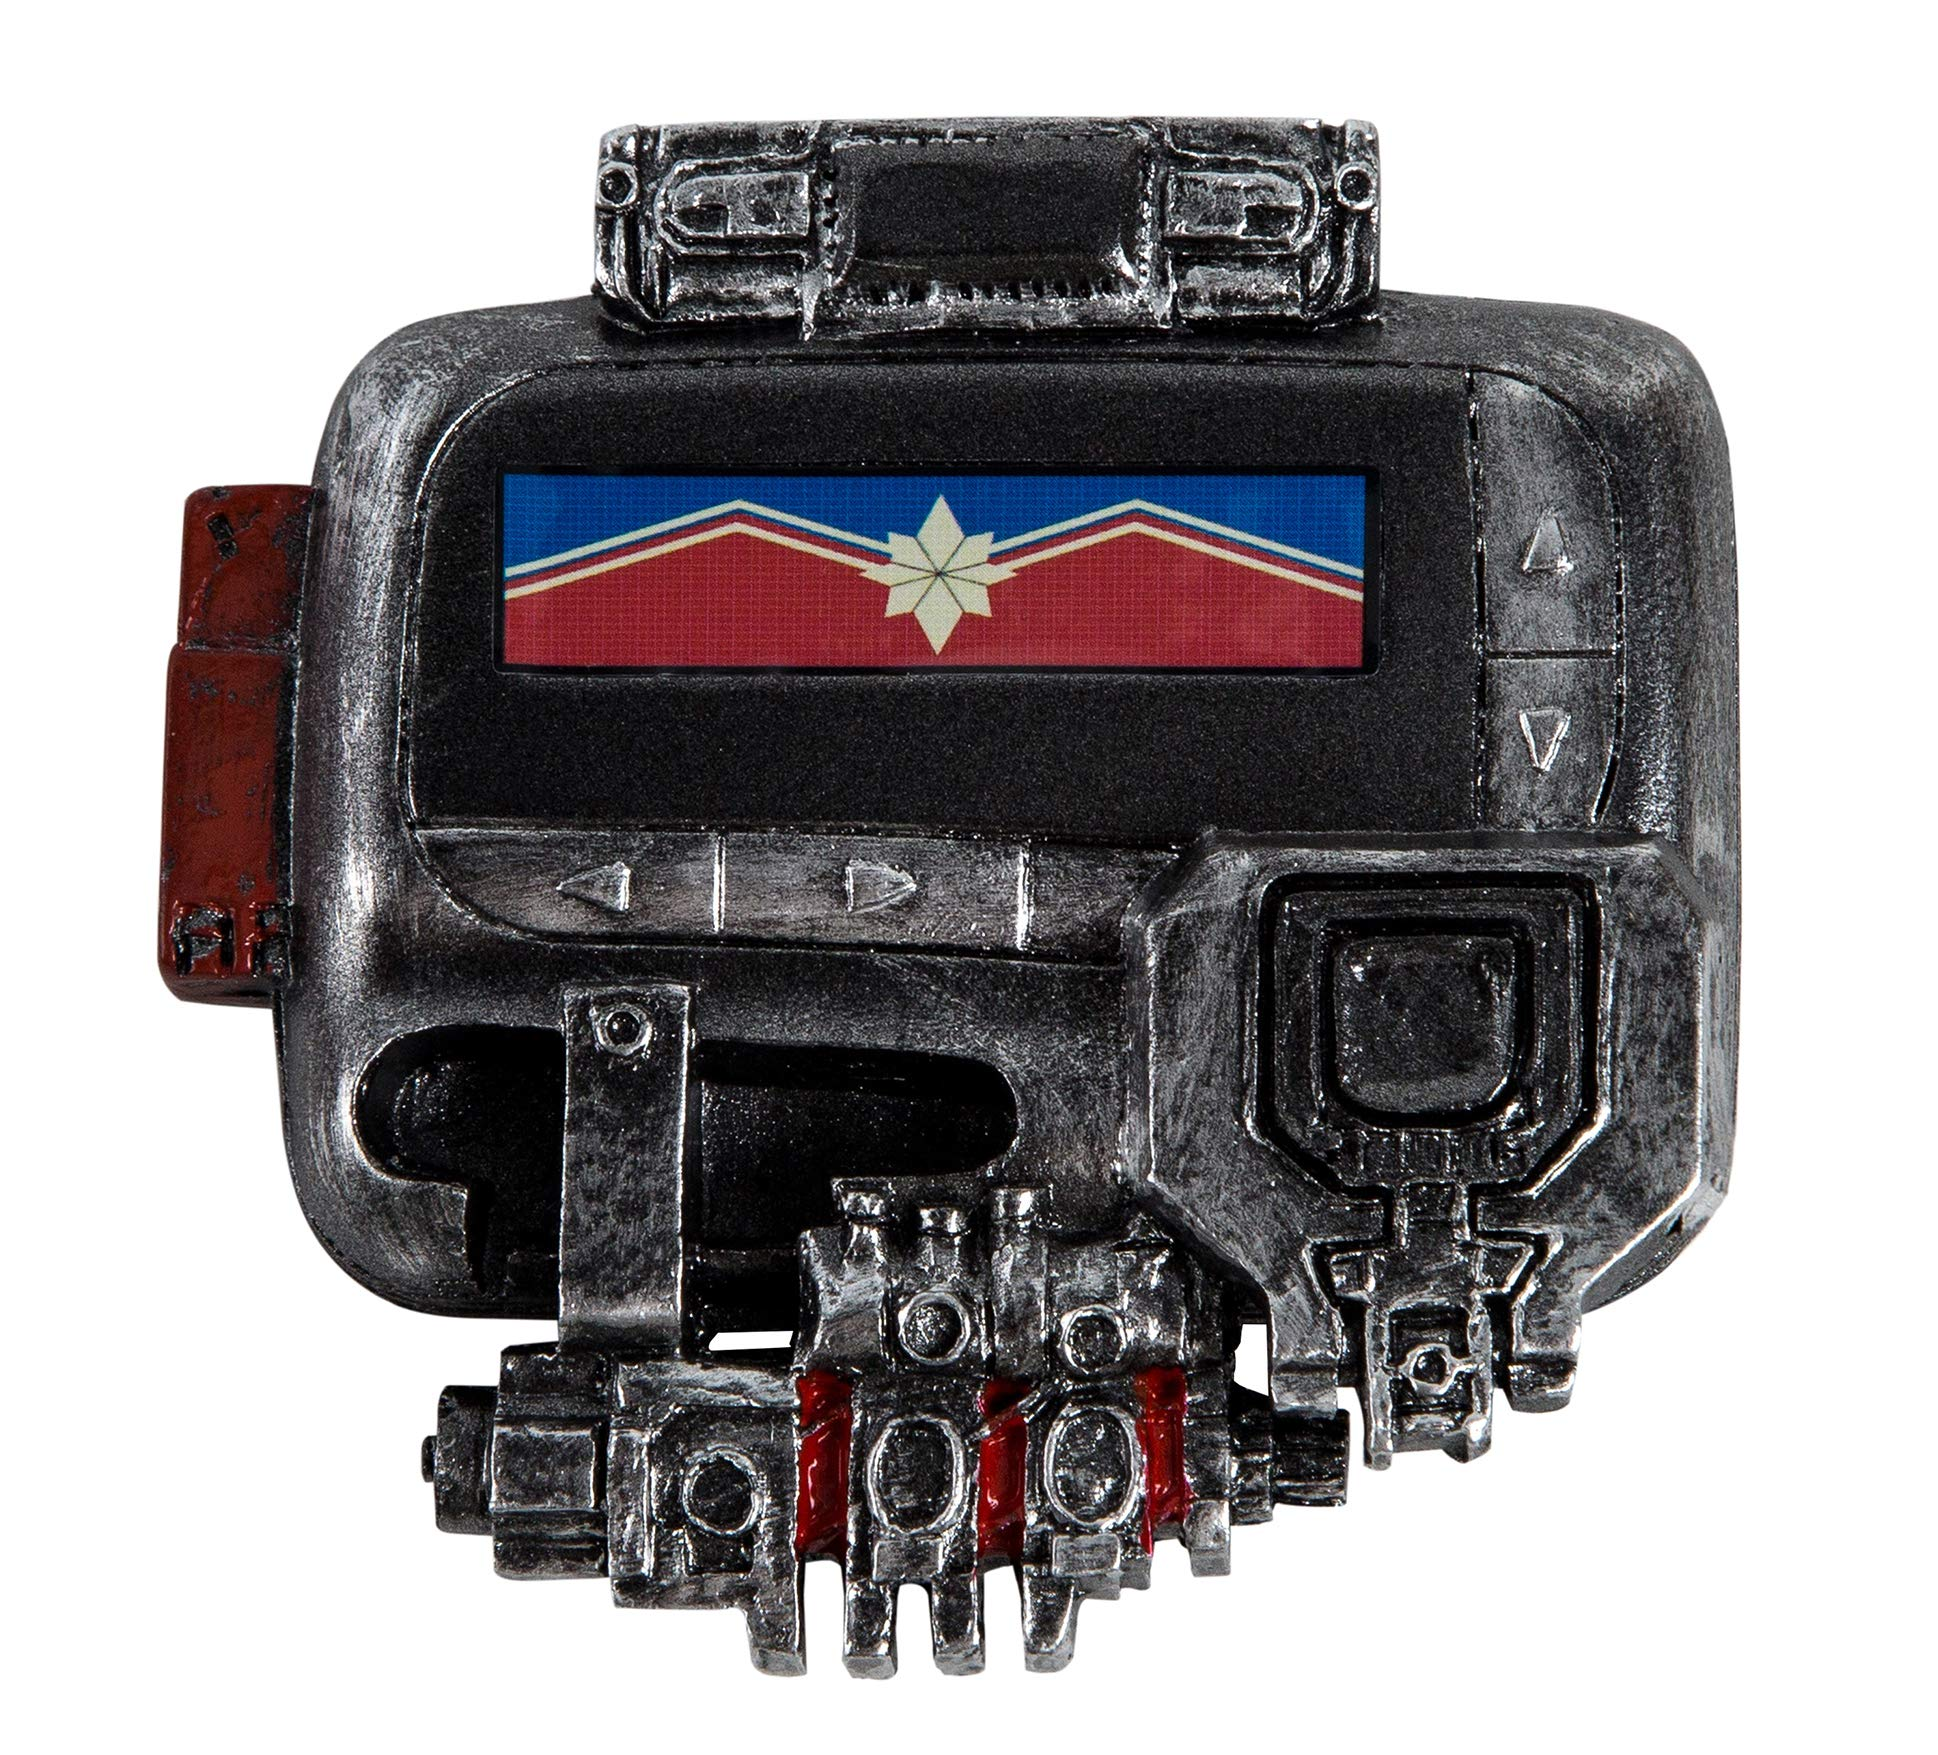 Nick Fury Pager,Captain Marvel Pager,Nick Fury Captain Marvel Cosplay Pager Beeper Props Silver